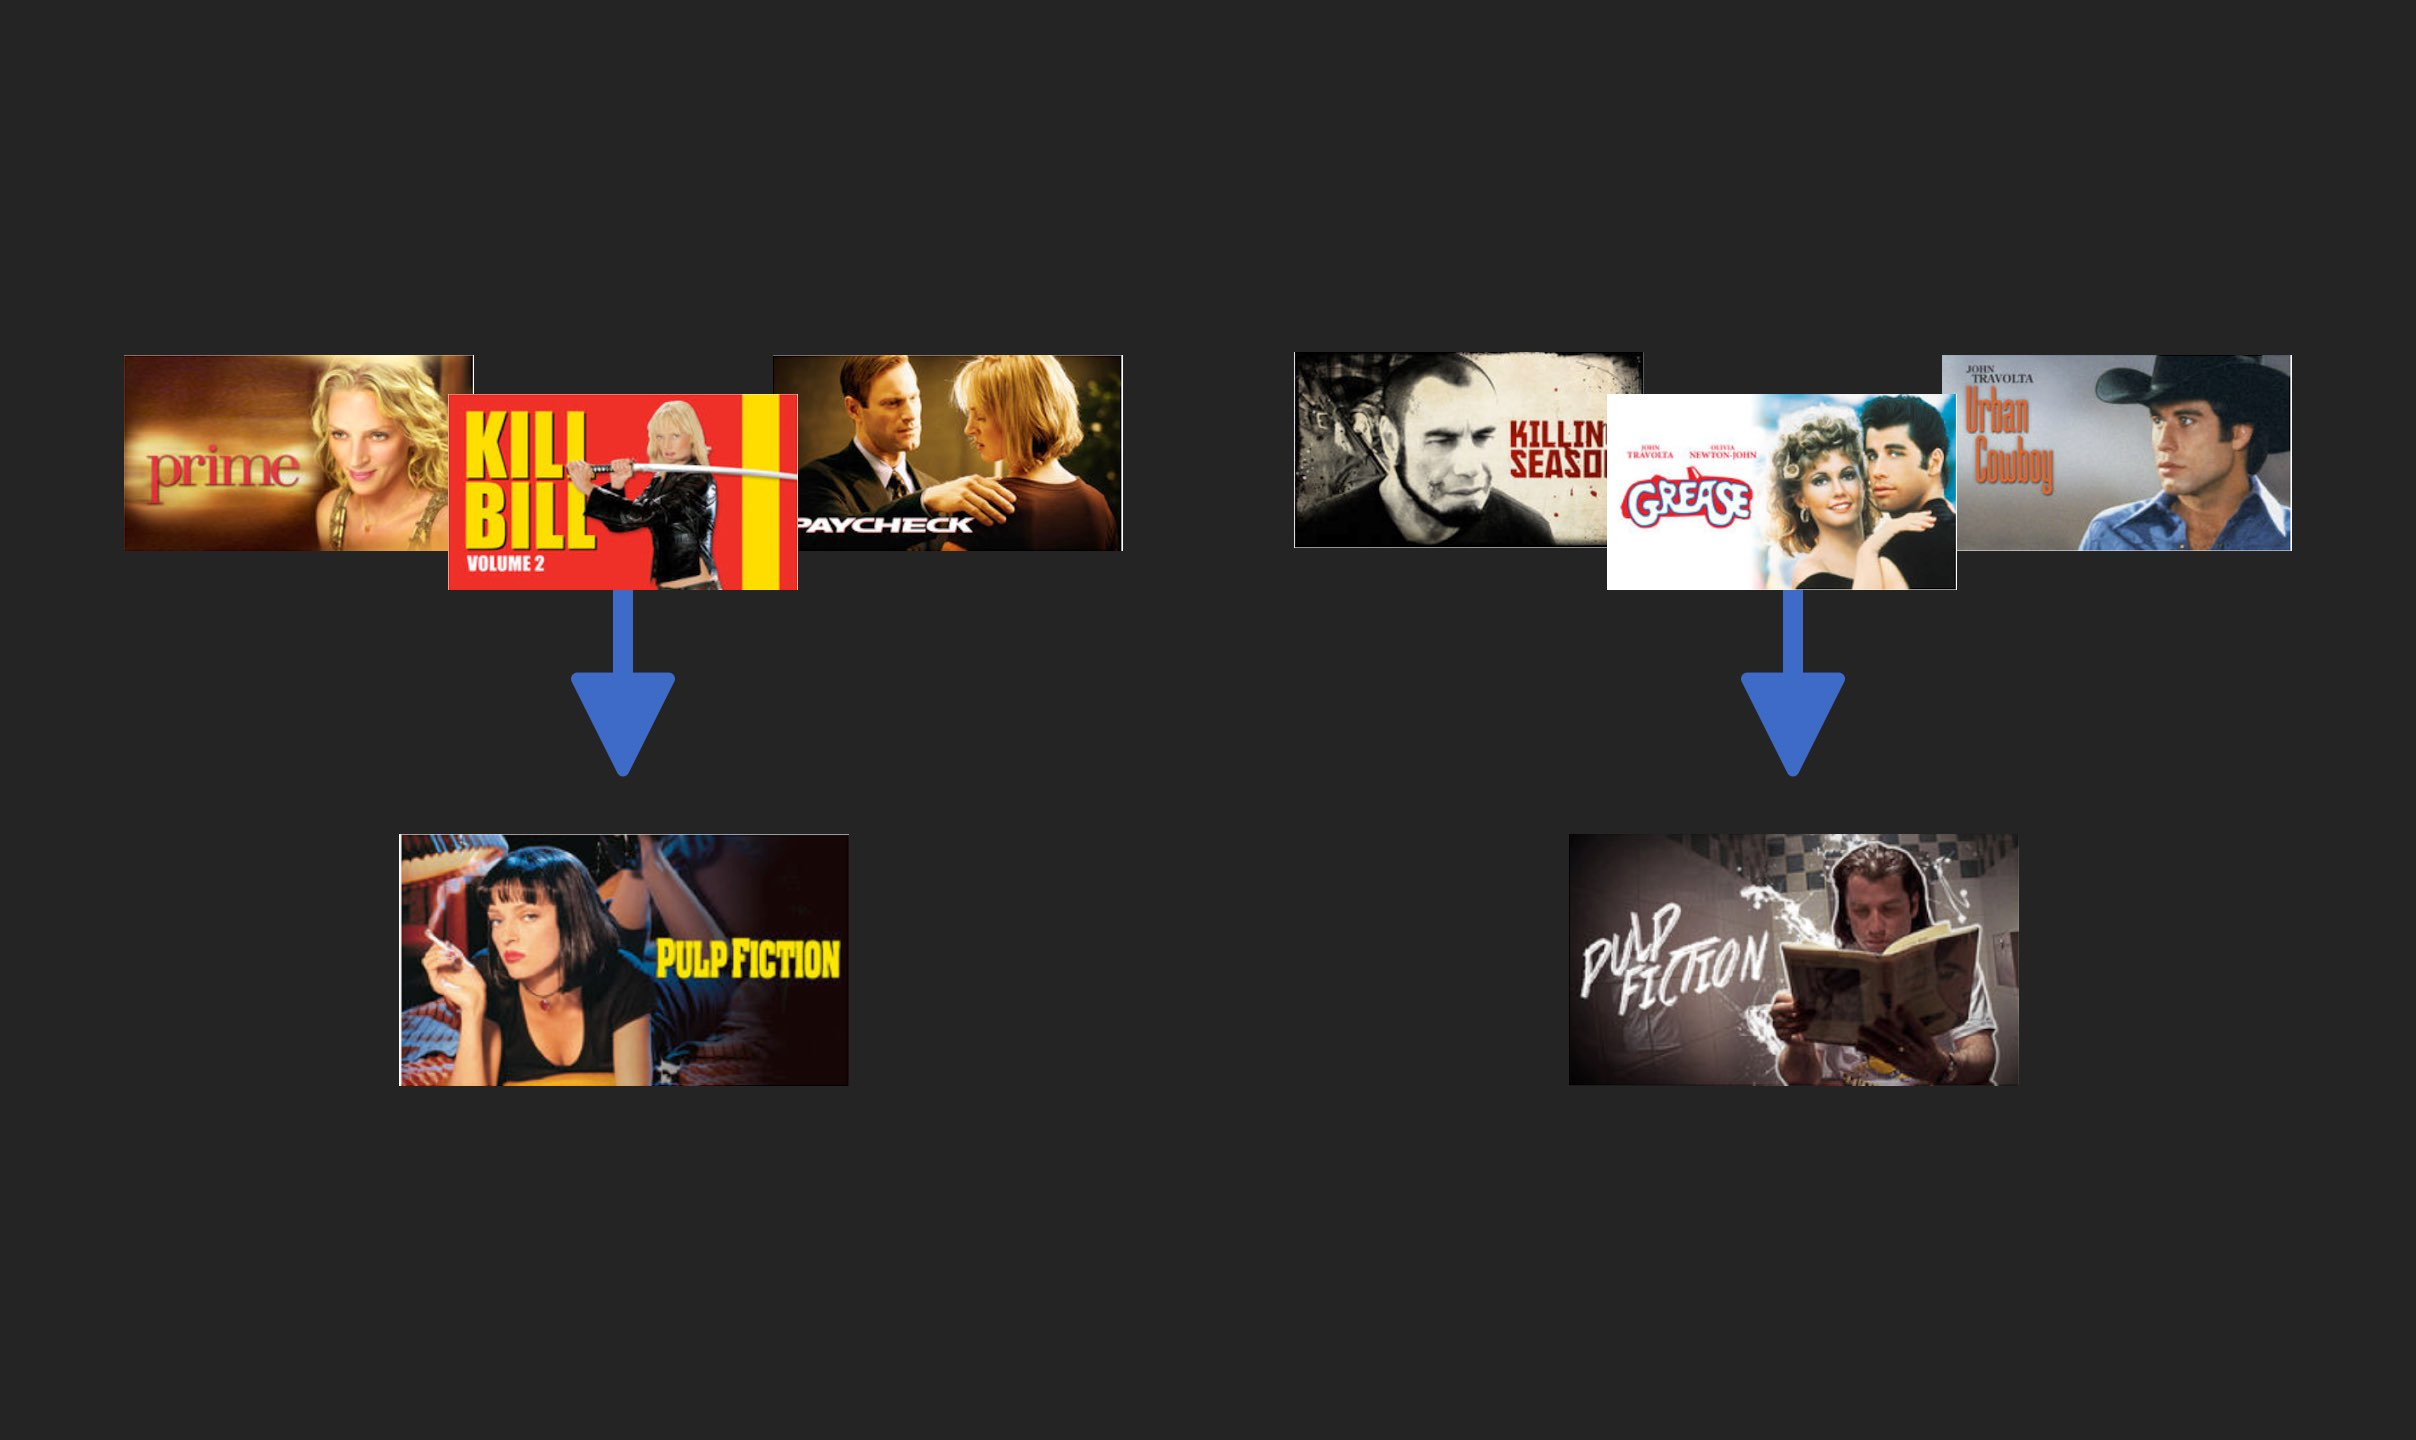 A series of movie posters showing how your Netflix viewing history determines whether the Pulp Fiction artwork shows either Uma Thurman or John Travolta.